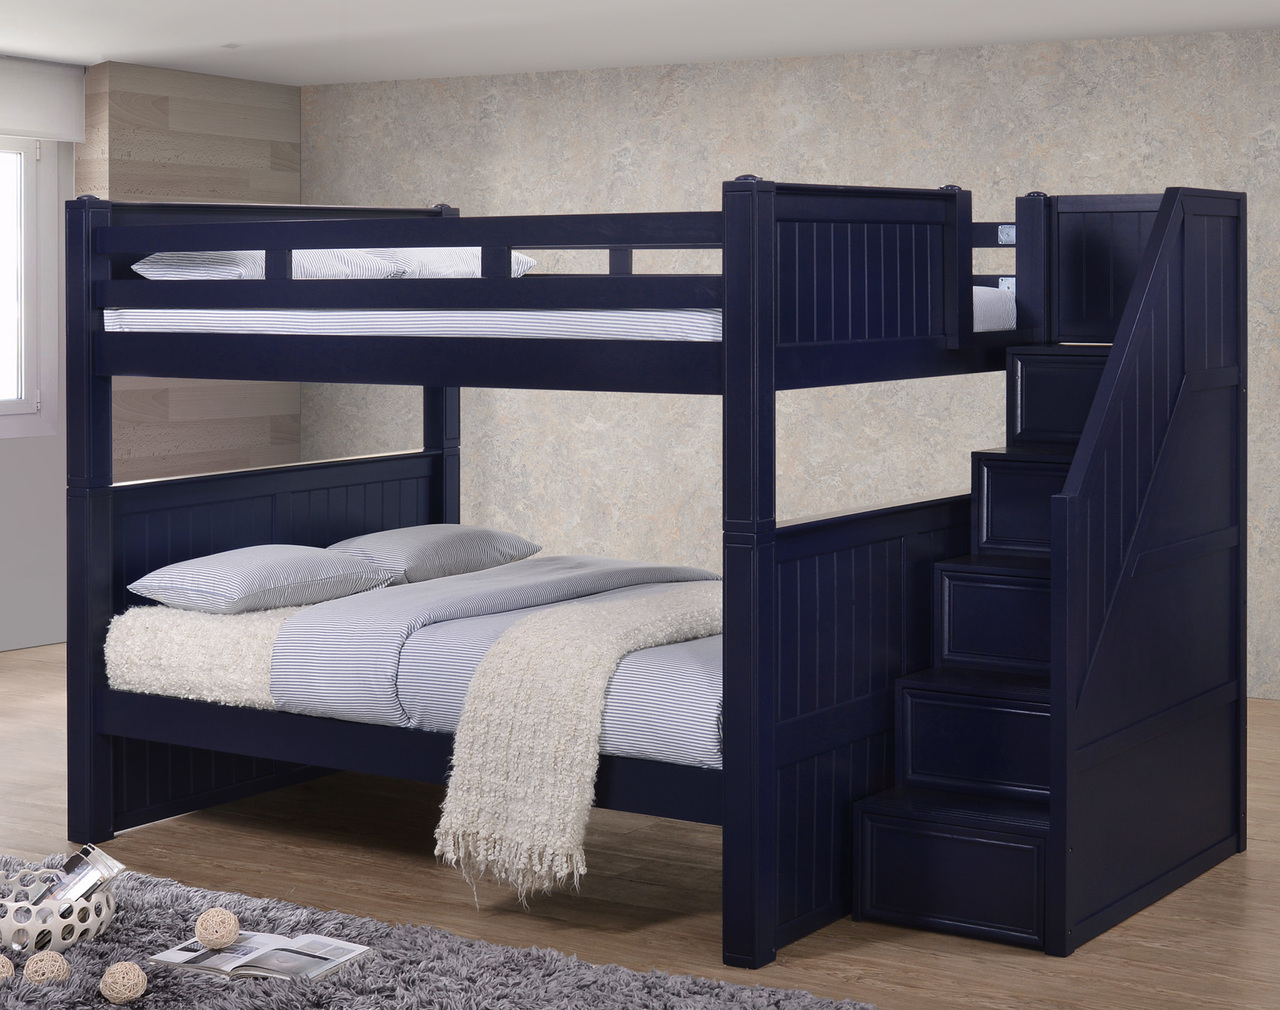 Dillon Full over Full Bunk Beds with Storage Stairs | DILLON Full Size Bunk  Bed with